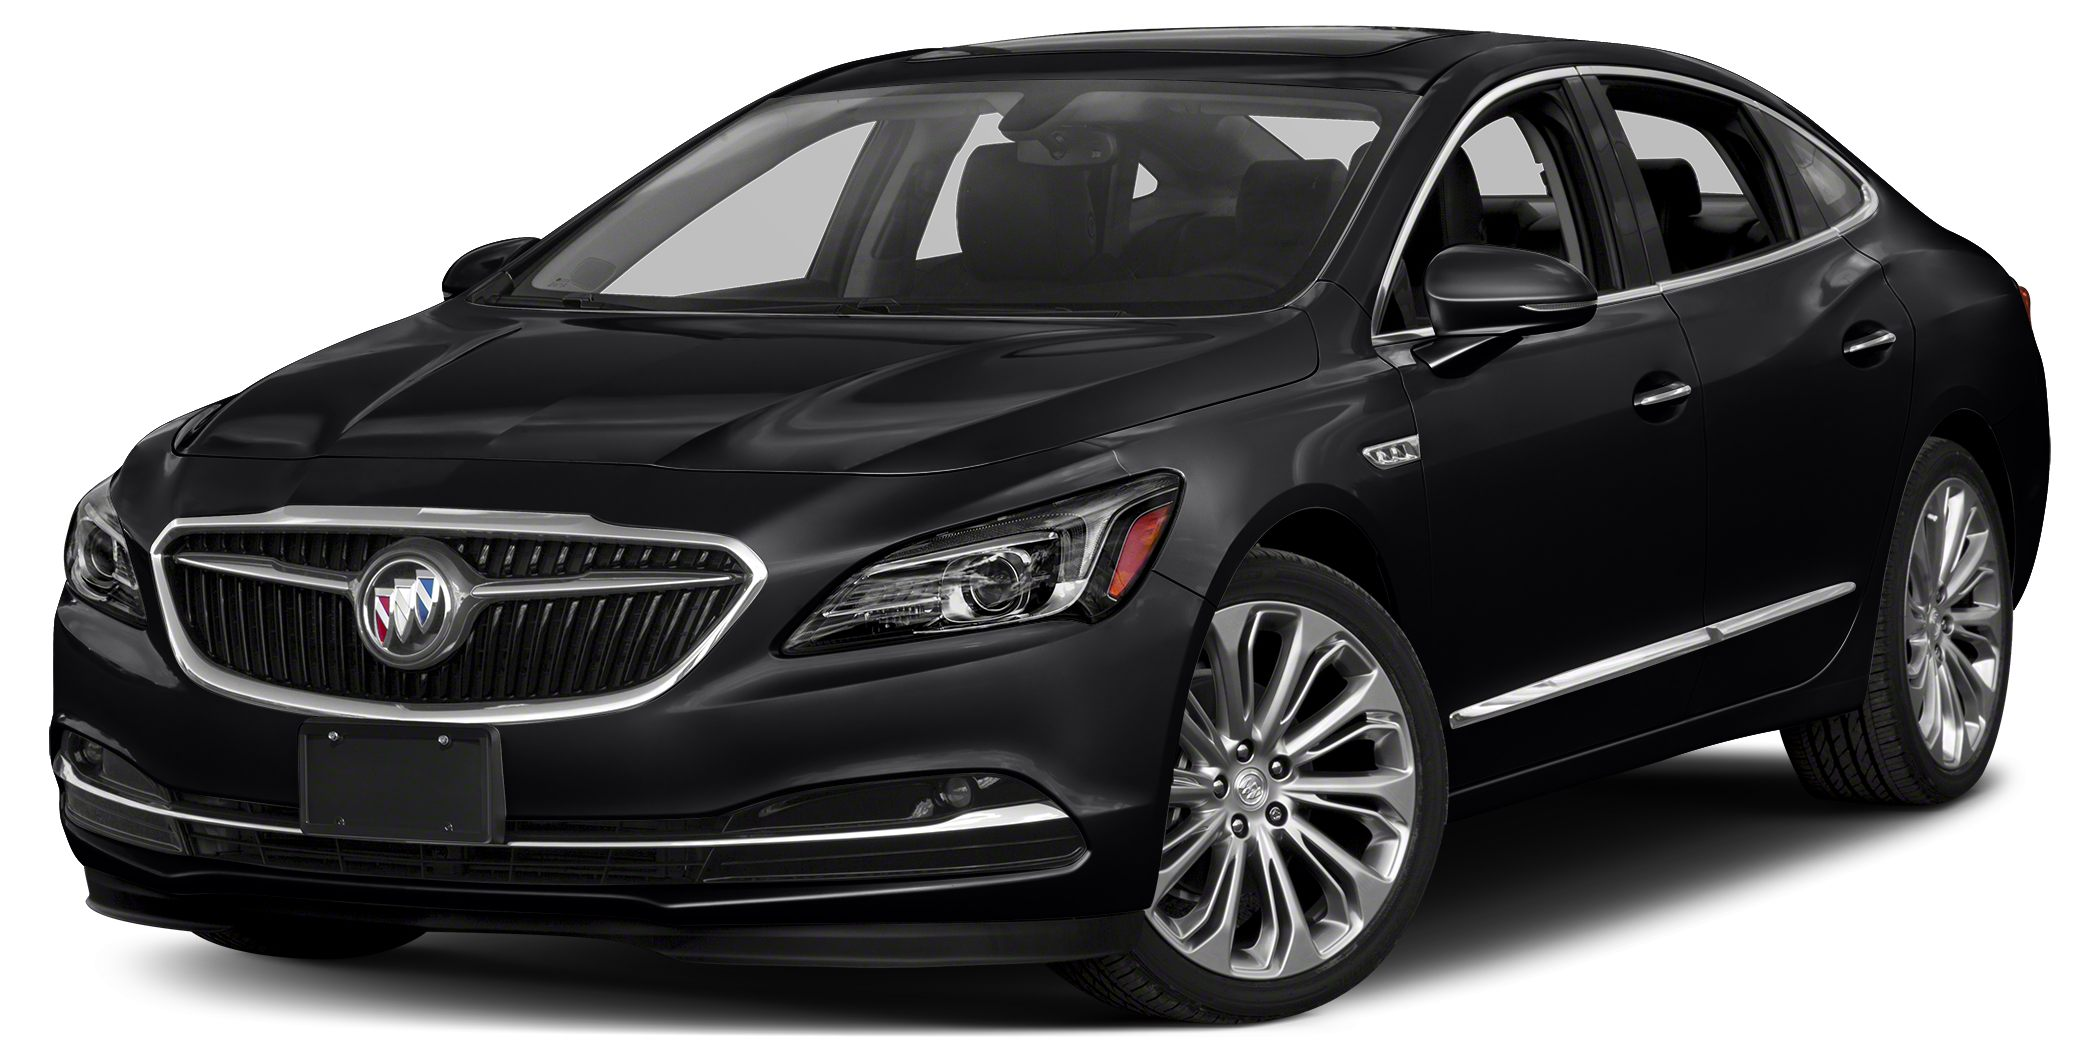 2017 Buick LaCrosse Essence This 2017 Buick LaCrosse Essence is a great option for folks looking f